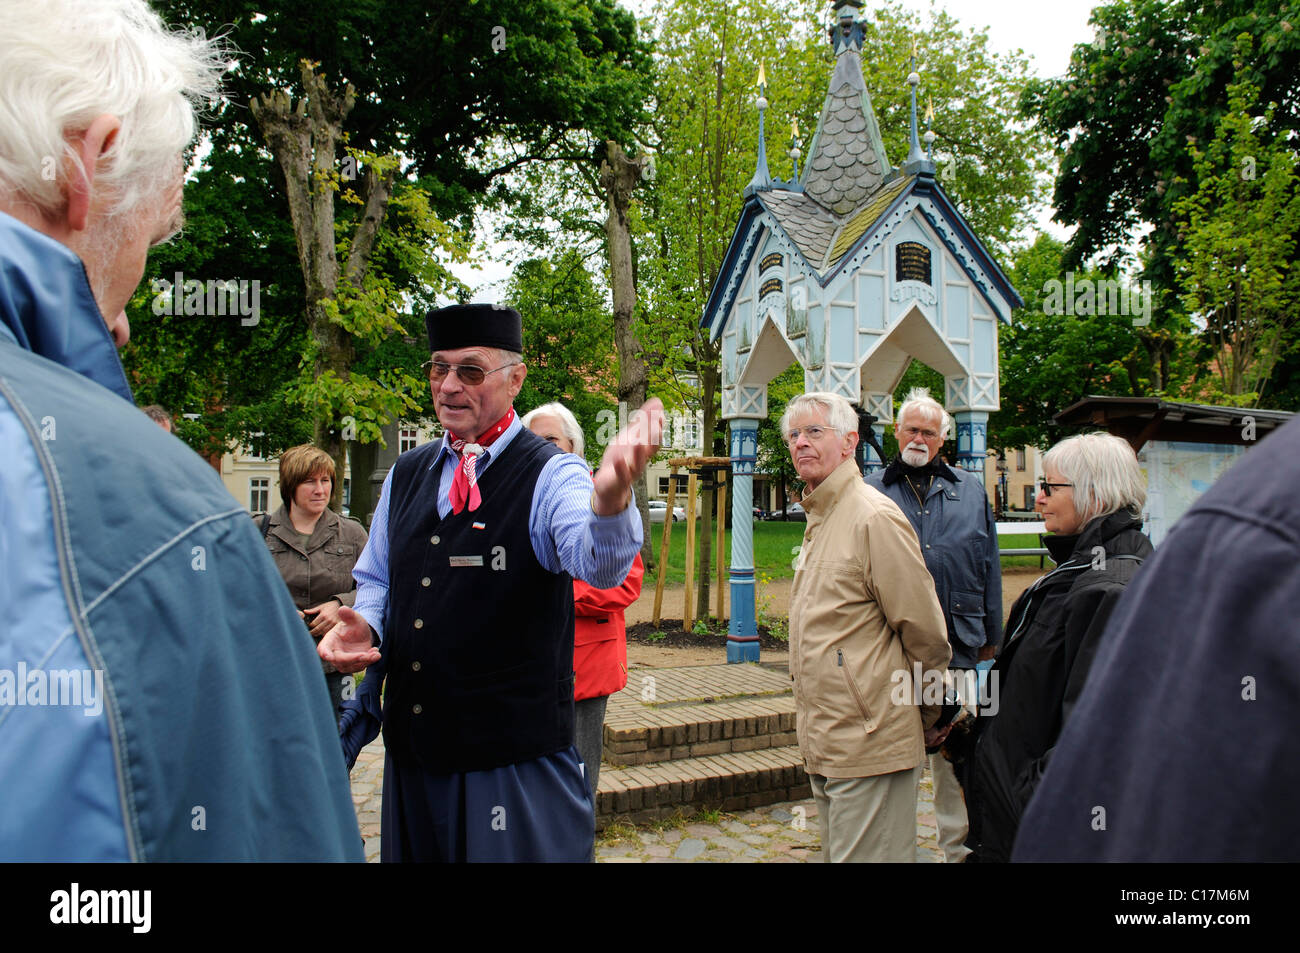 City guide and party during guided city tour in Friedrichstadt, North Frisia, Schleswig-Holstein, Germany, Europe - Stock Image